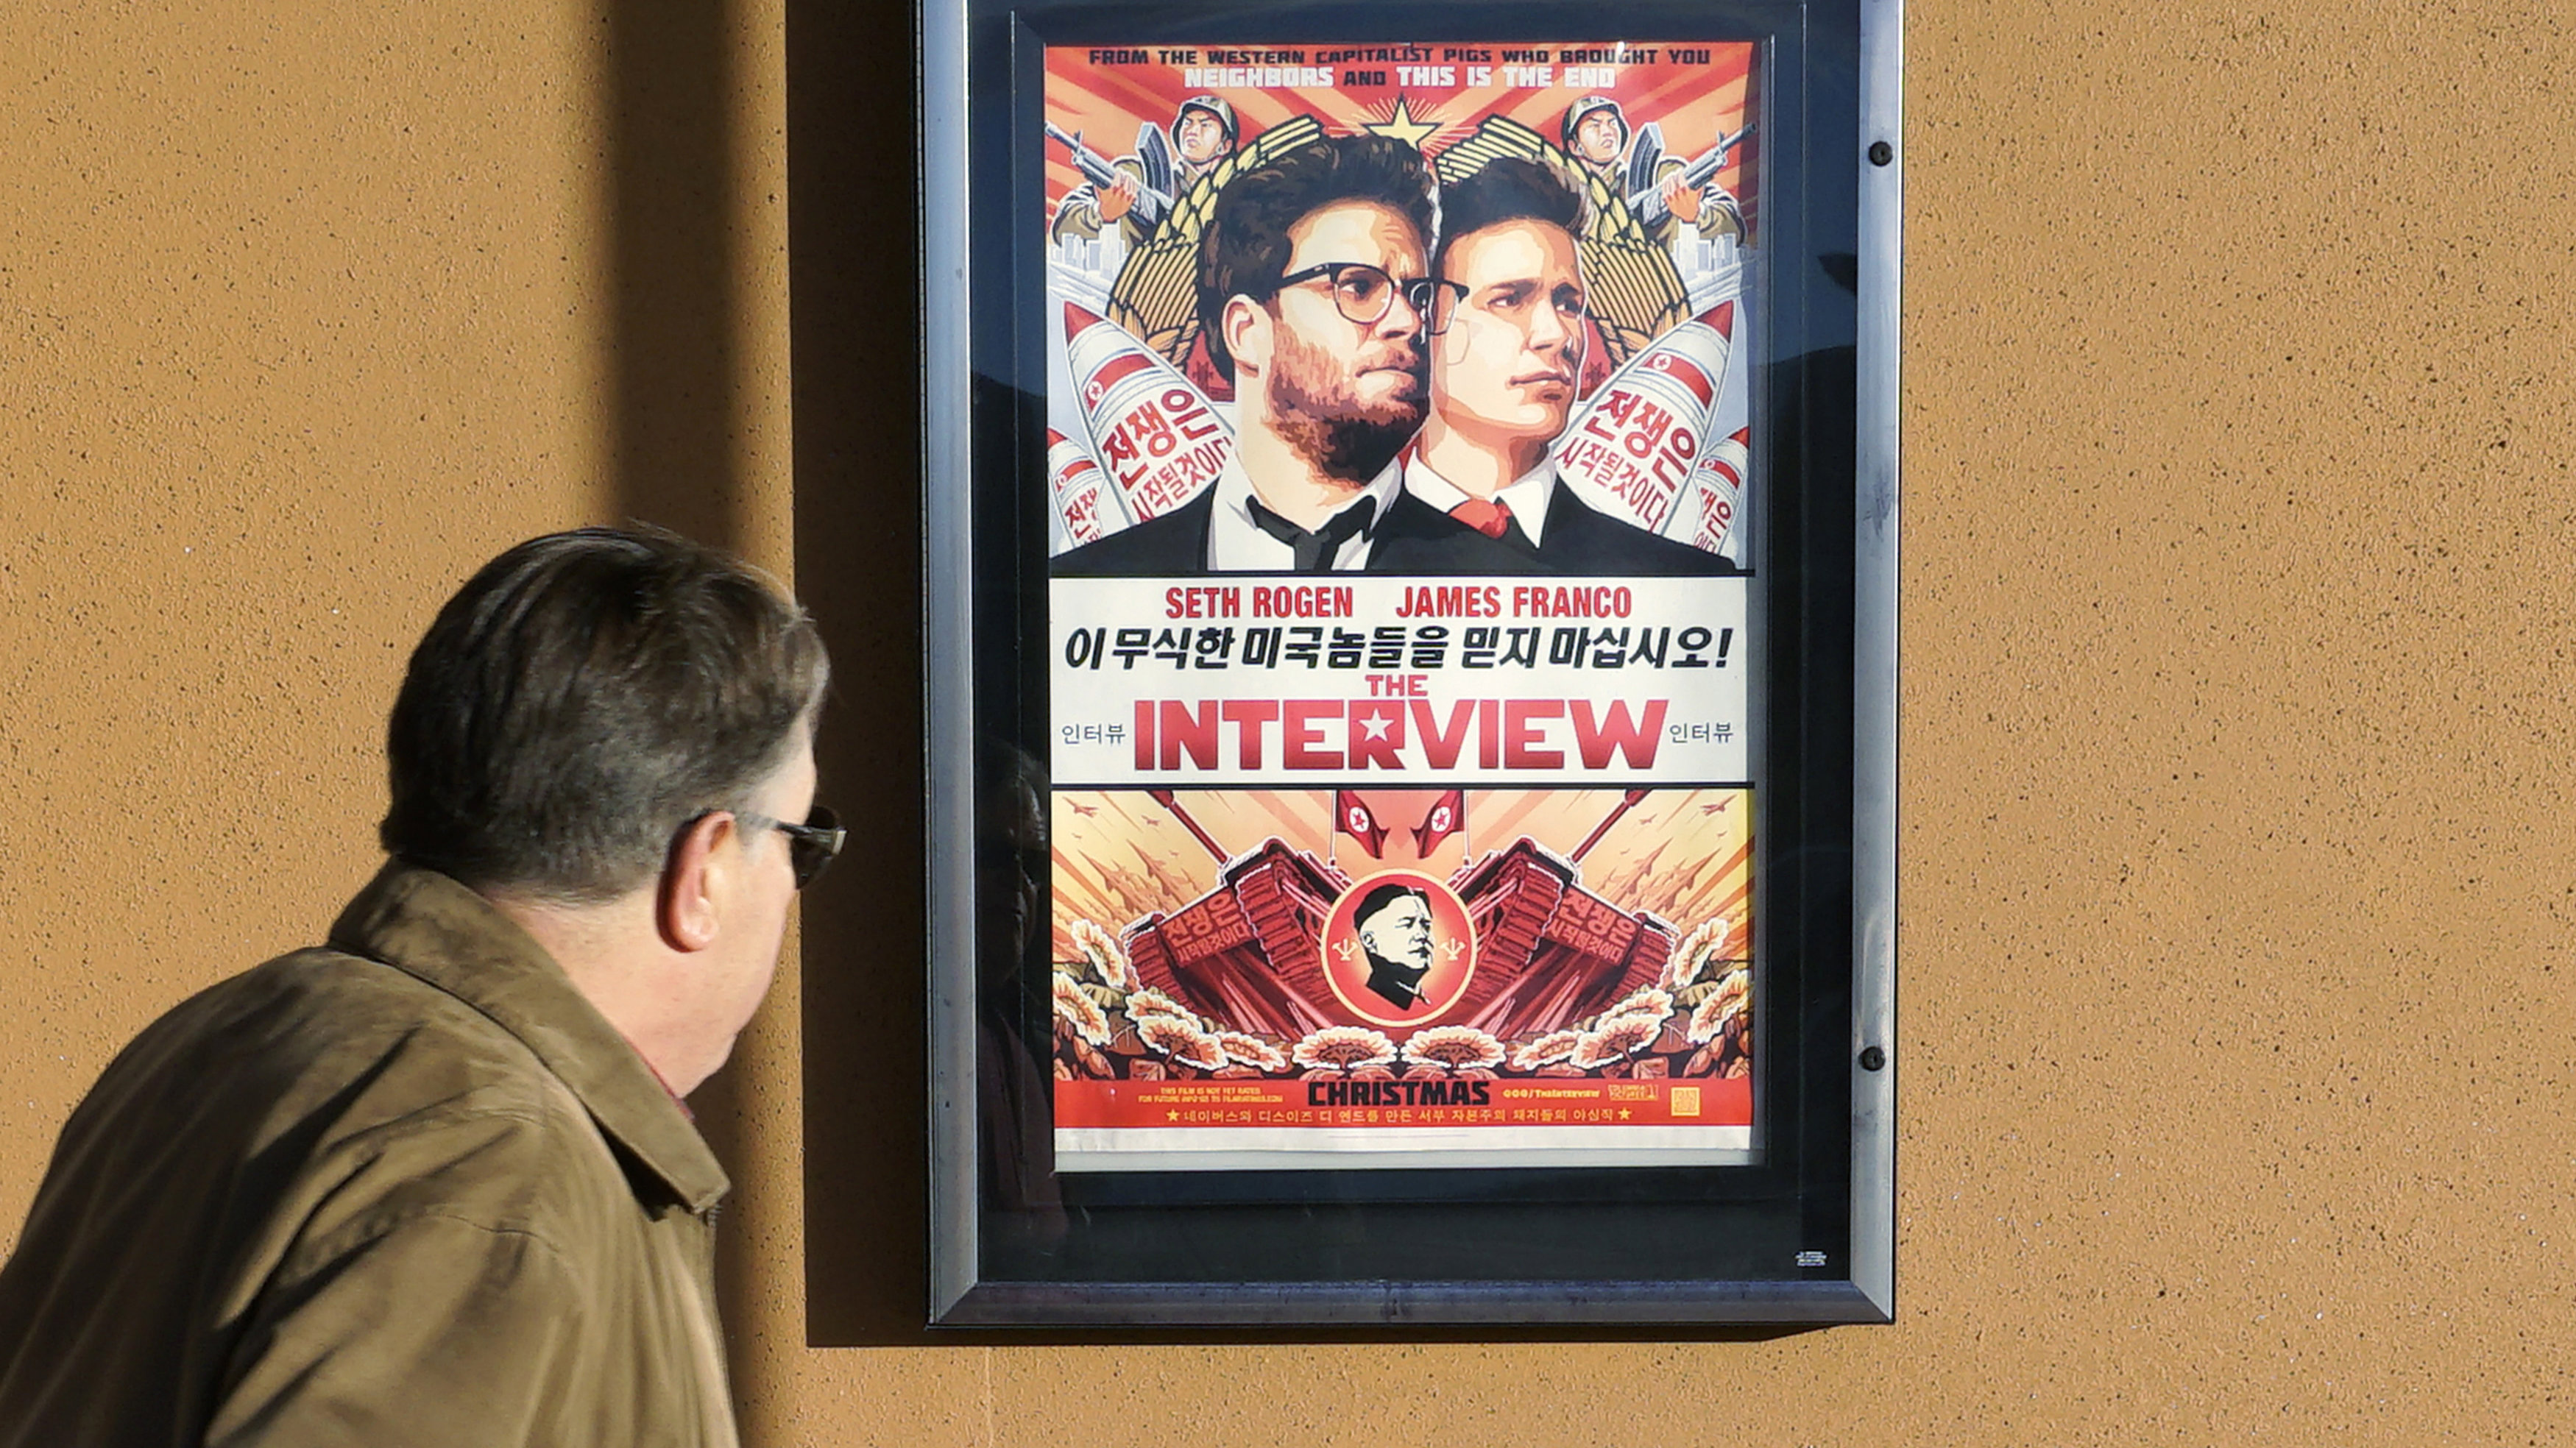 """A man walks by the poster for the film """"The Interview"""" outside the Alamo Drafthouse theater in Littleton, Colorado December 23, 2014. Sony Pictures said on Tuesday it will release """"The Interview"""" to a limited number of theatres on December 25, less than a week after it cancelled the comedy's release following a devastating cyberattack blamed on North Korea. Sony's about-face came after it absorbed withering criticism, even from President Barack Obama for its decision last week to pull the film, which was seen not only as self-censorship in Hollywood but also caving into hackers working for North Korea."""